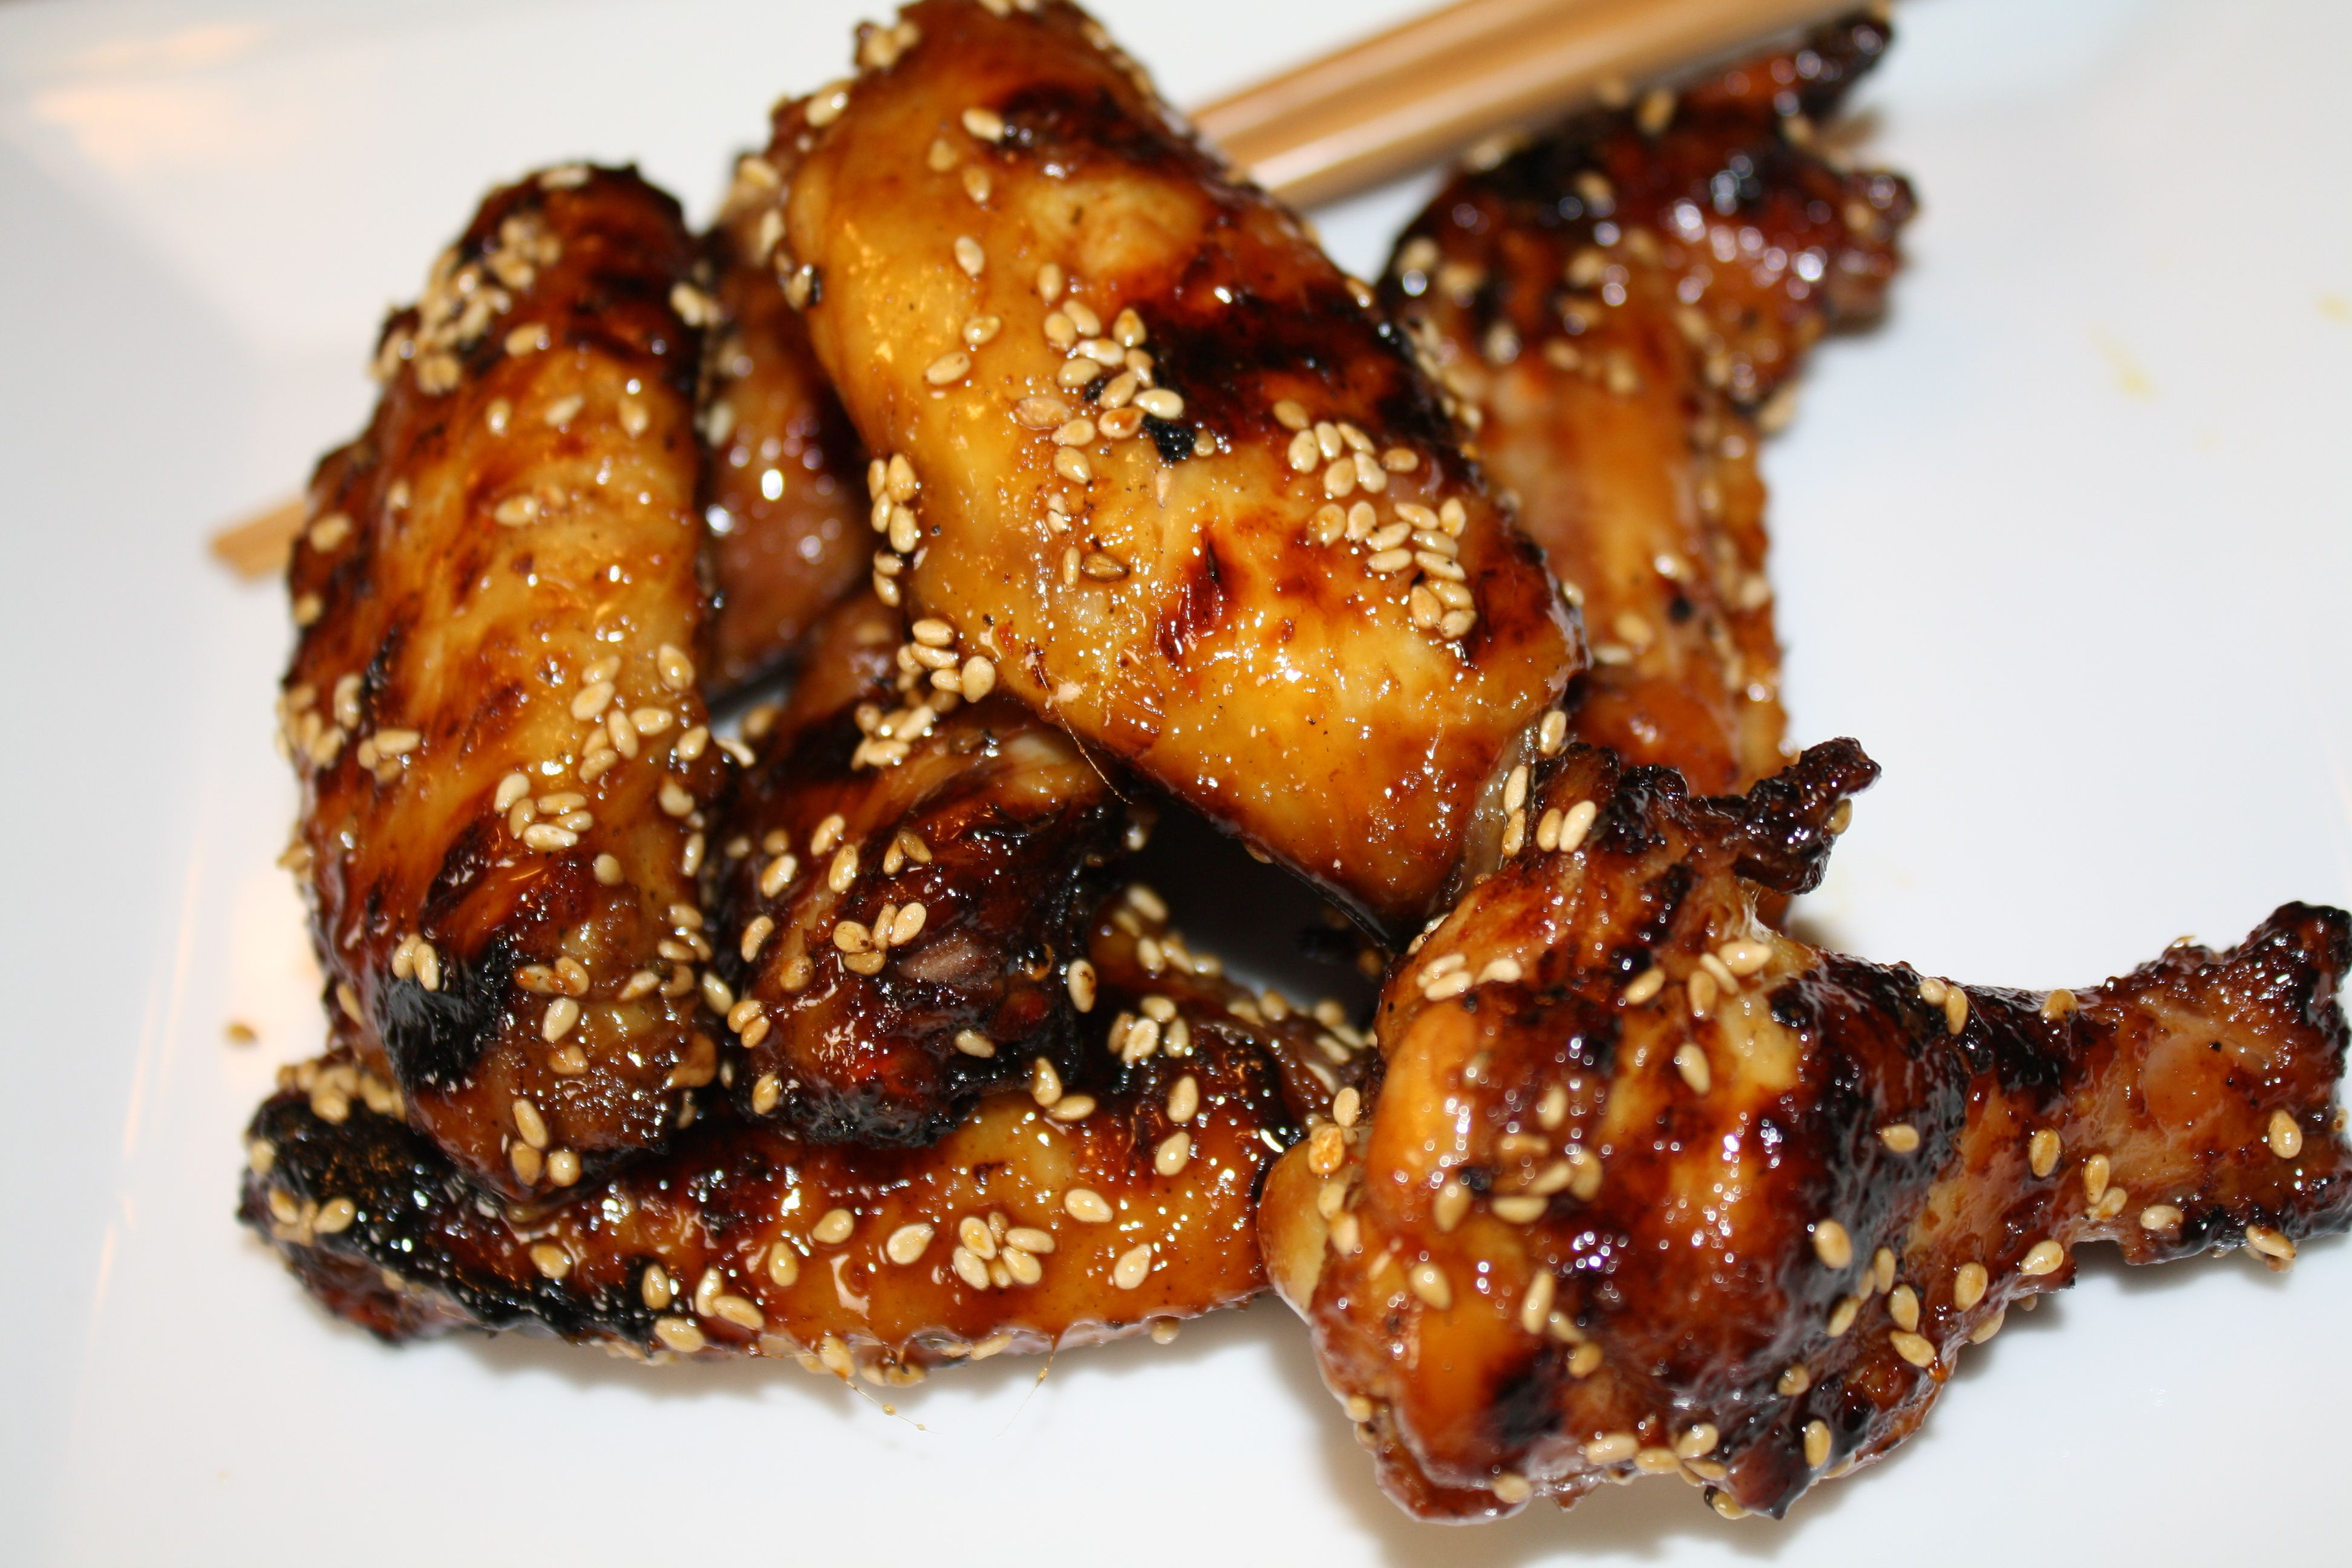 Grilled chicken wings in sesame flavors